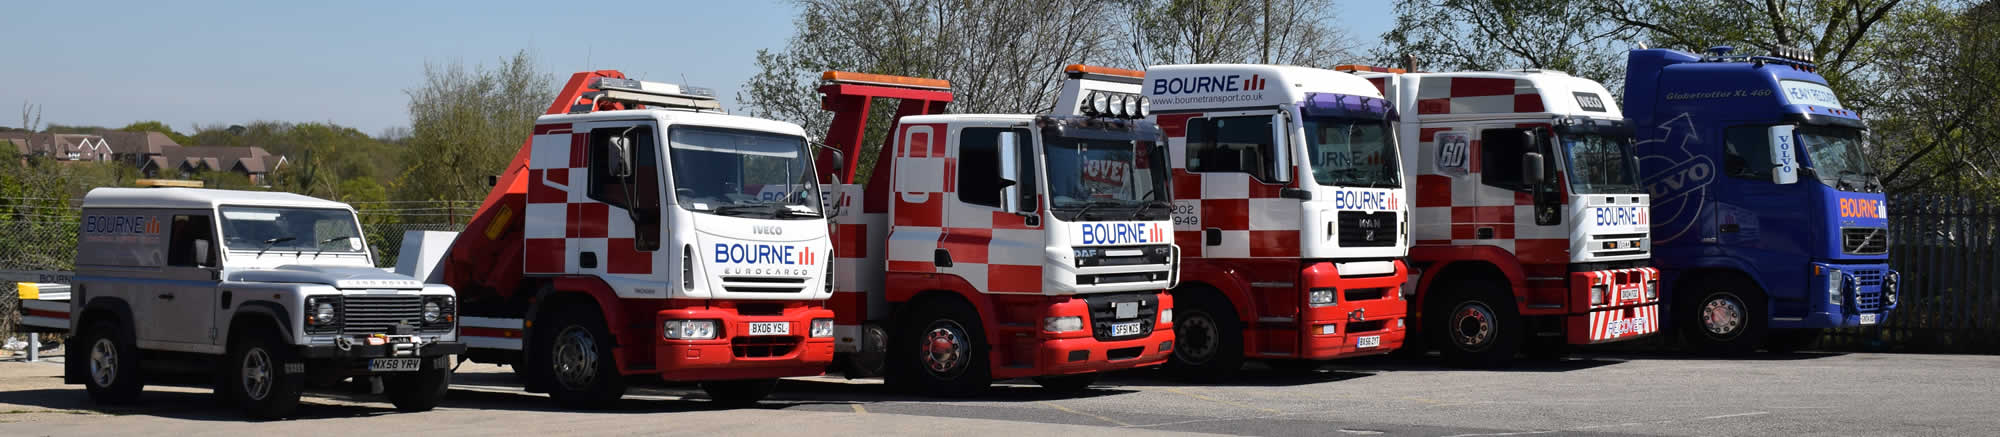 Bourne Transport Recovery Fleet